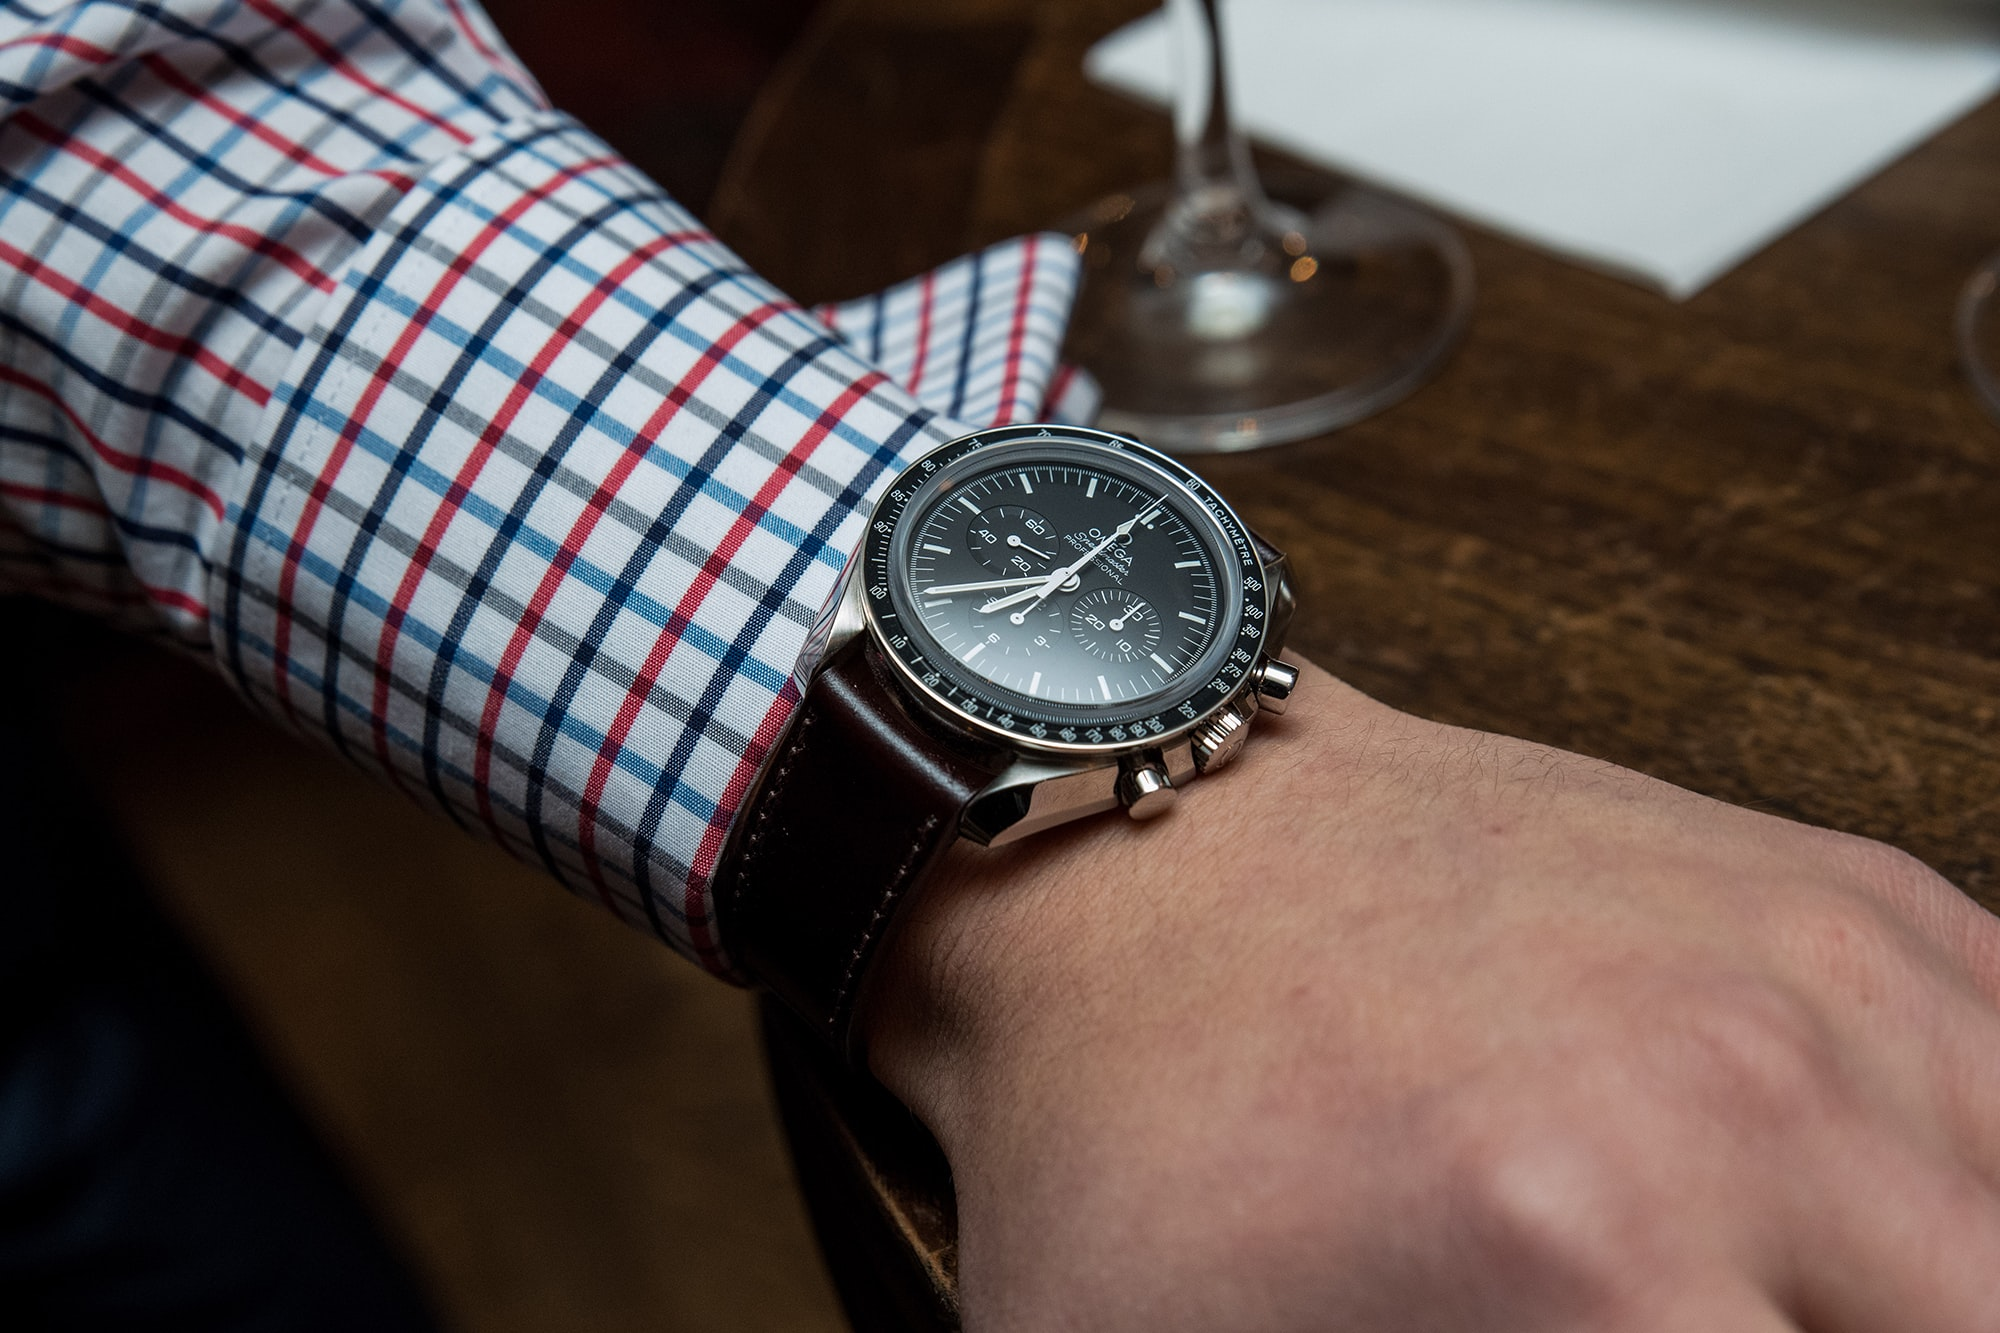 Photo Report: HODINKEE And Omega Celebrate The 60th Anniversary Of The Speedmaster Photo Report: HODINKEE And Omega Celebrate The 60th Anniversary Of The Speedmaster  20170221 OmegaSpeedmaster60th 023